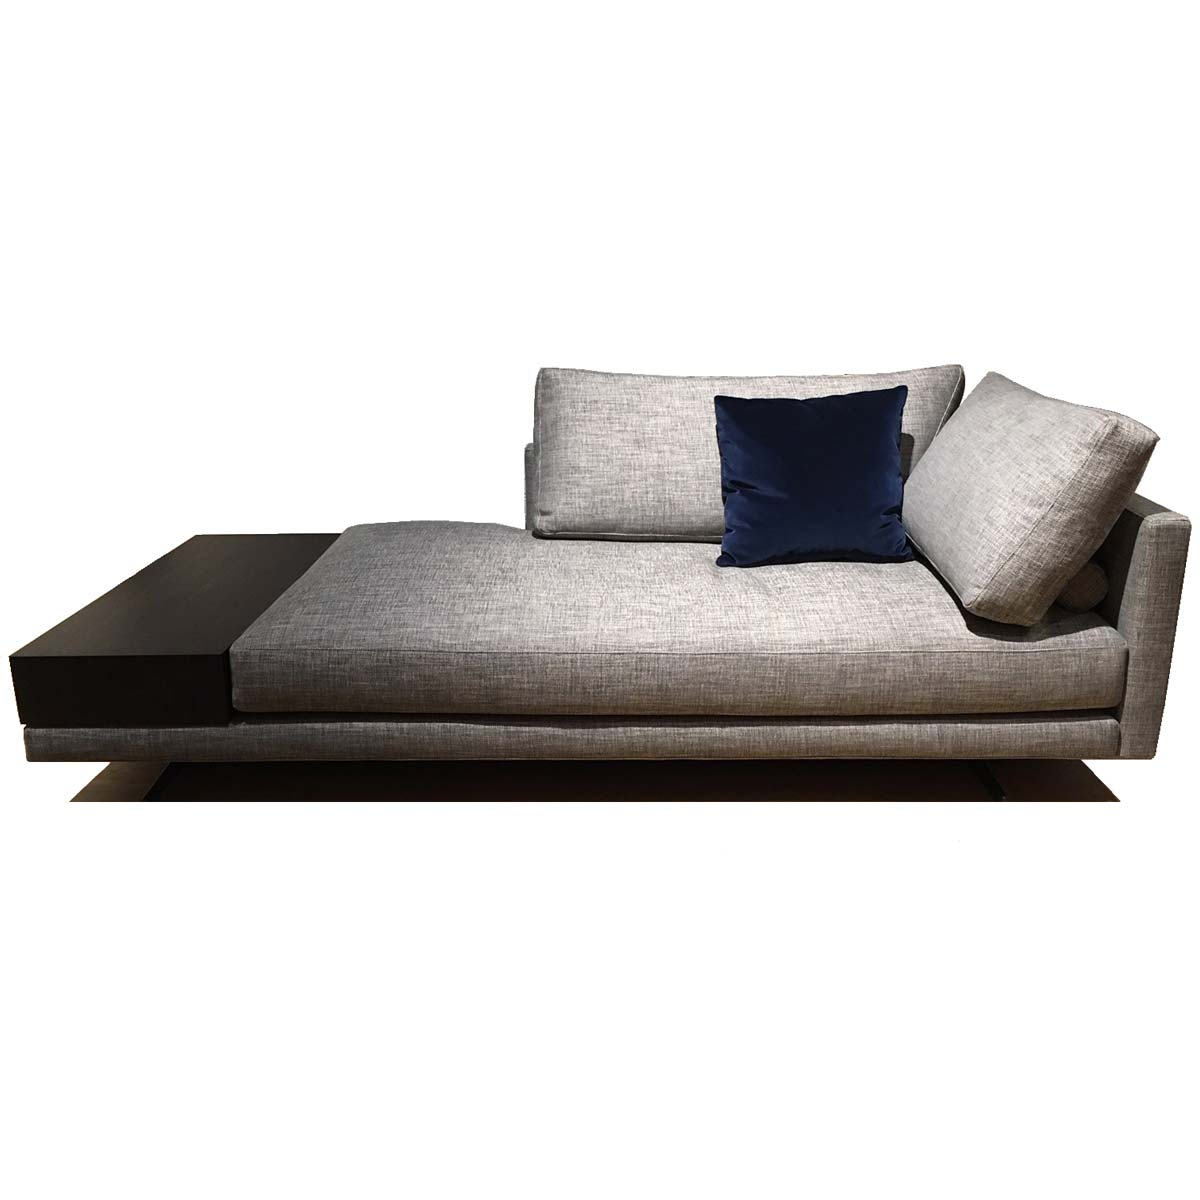 Stock sofas Nkde Mondrian sofa by Poliform In Naharro Furniture Online Shop